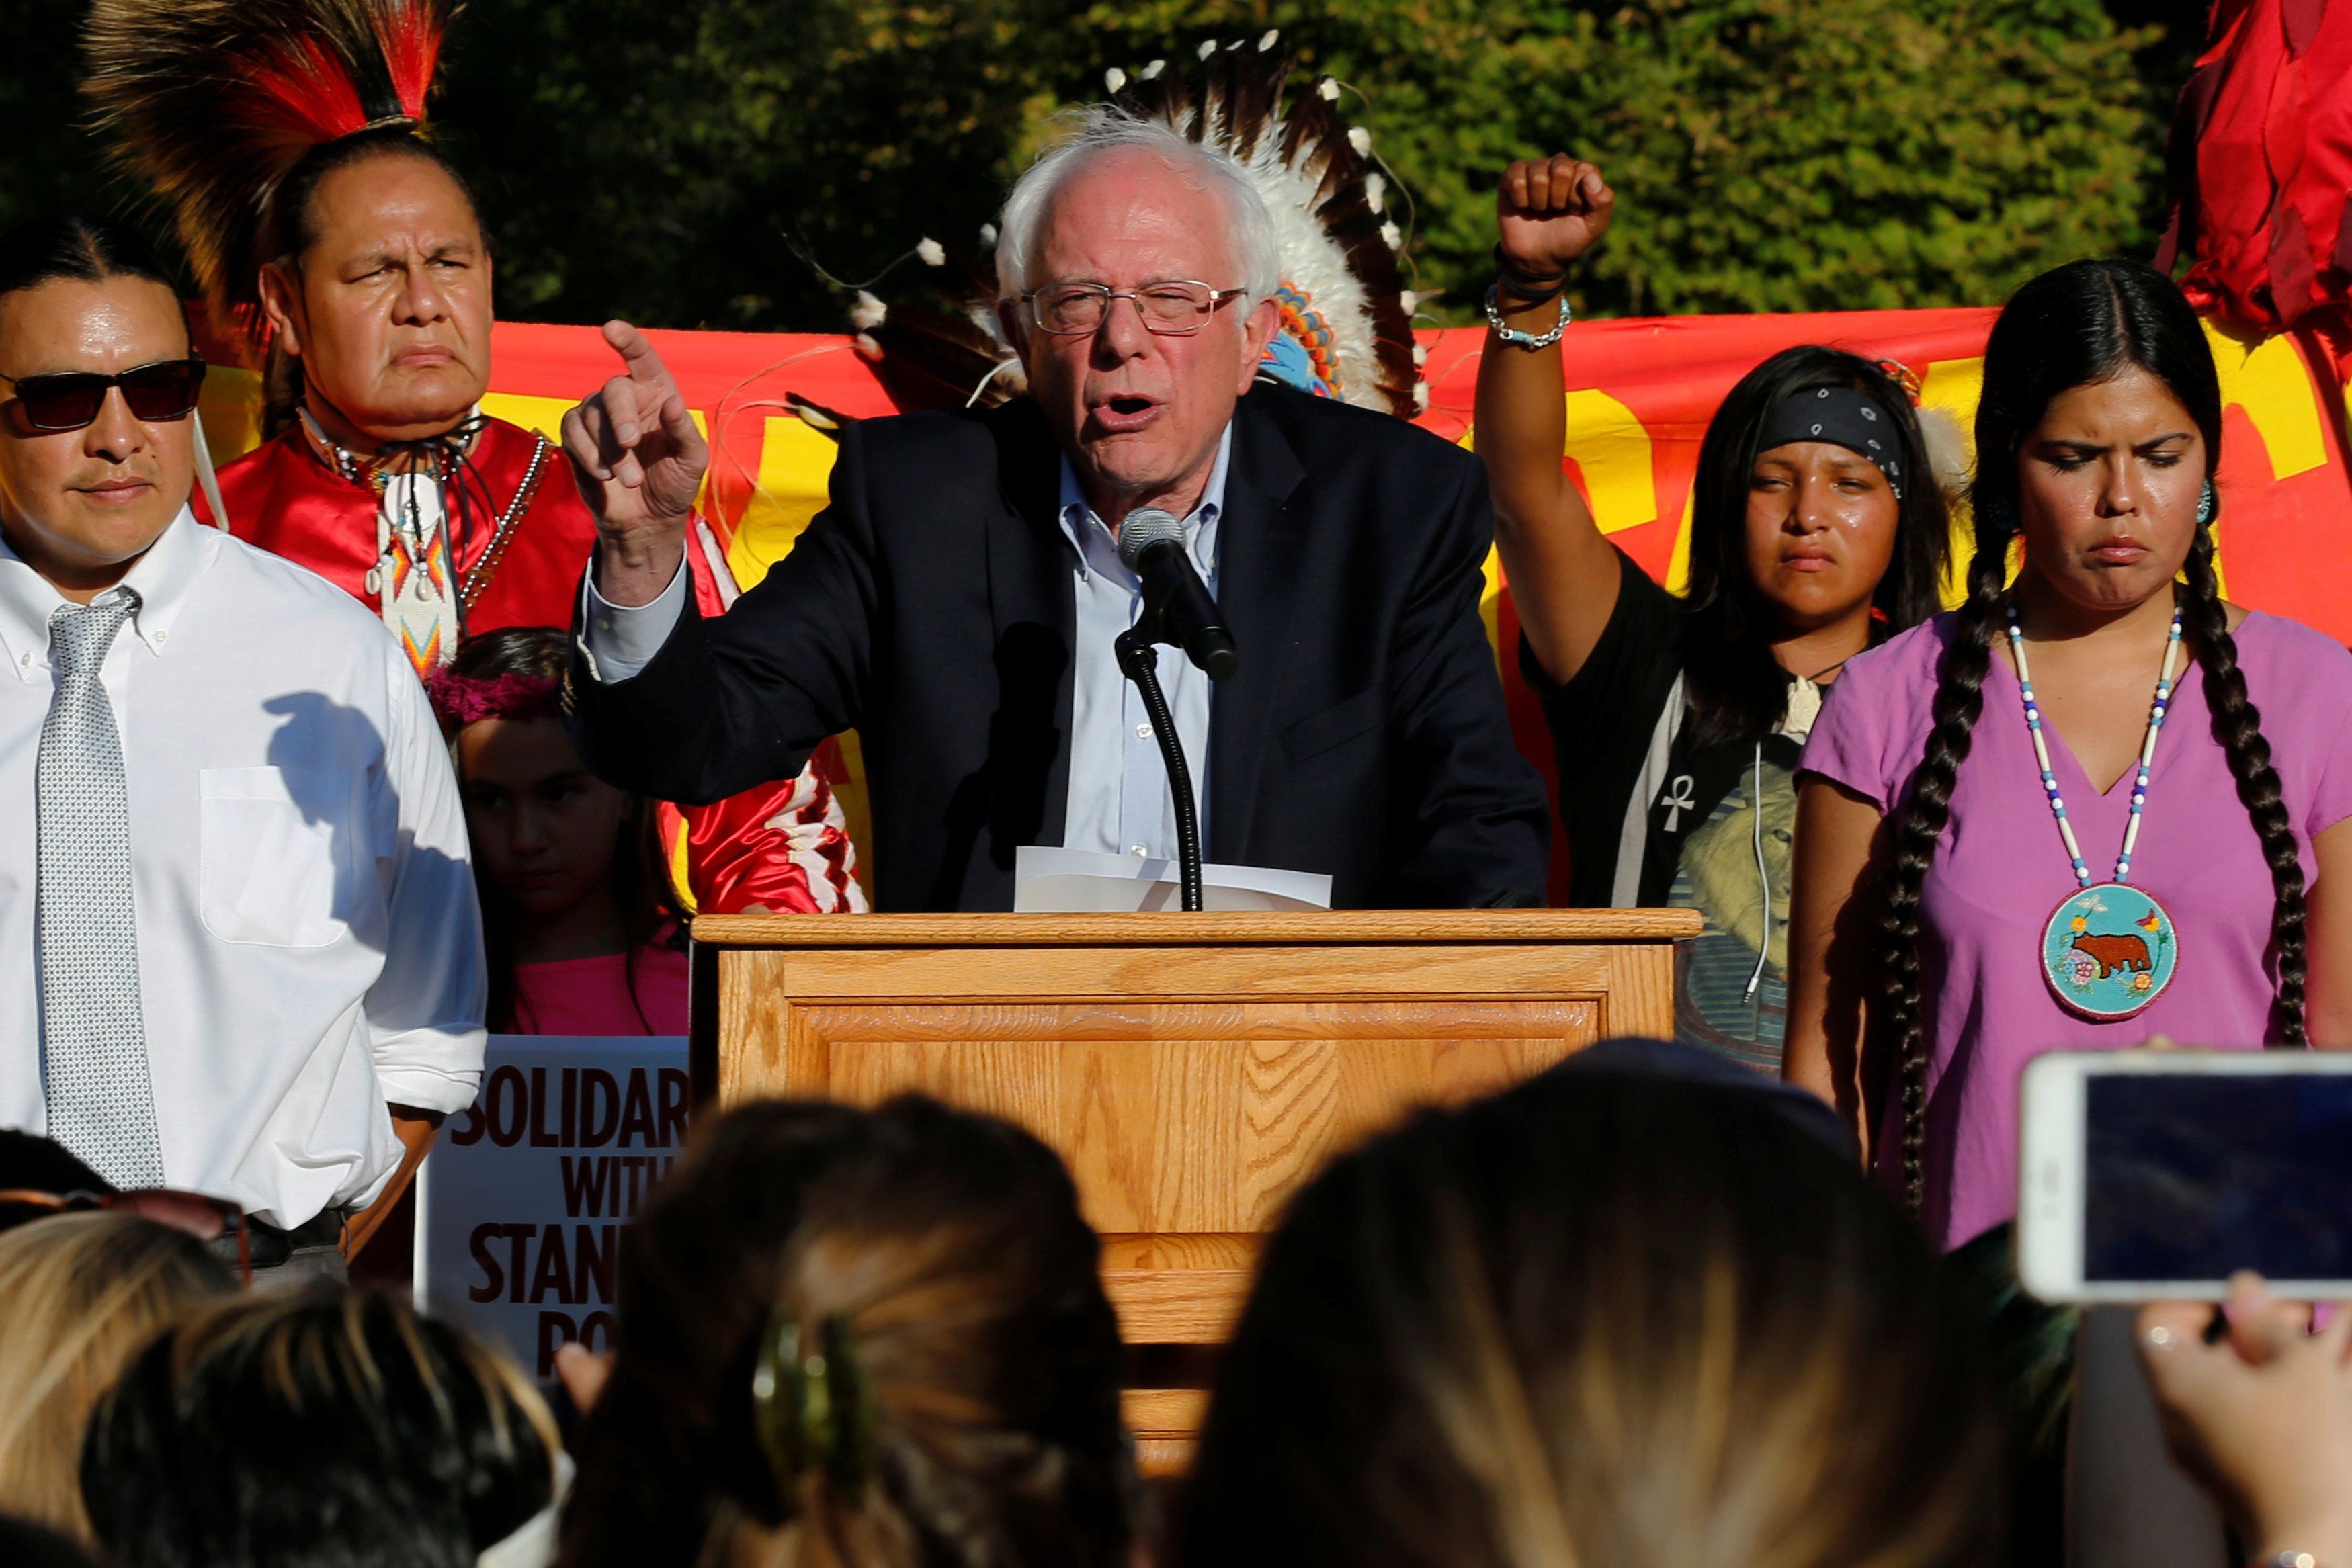 Former Democratic presidential candidate Senator Bernie Sanders (I-VT) (C) speaks at a rally with Native American activists to call on President Barack Obama to stop the Dakota Access Pipeline, in front of the White House in Washington, U.S. September 13, 2016. REUTERS/Jonathan Ernst